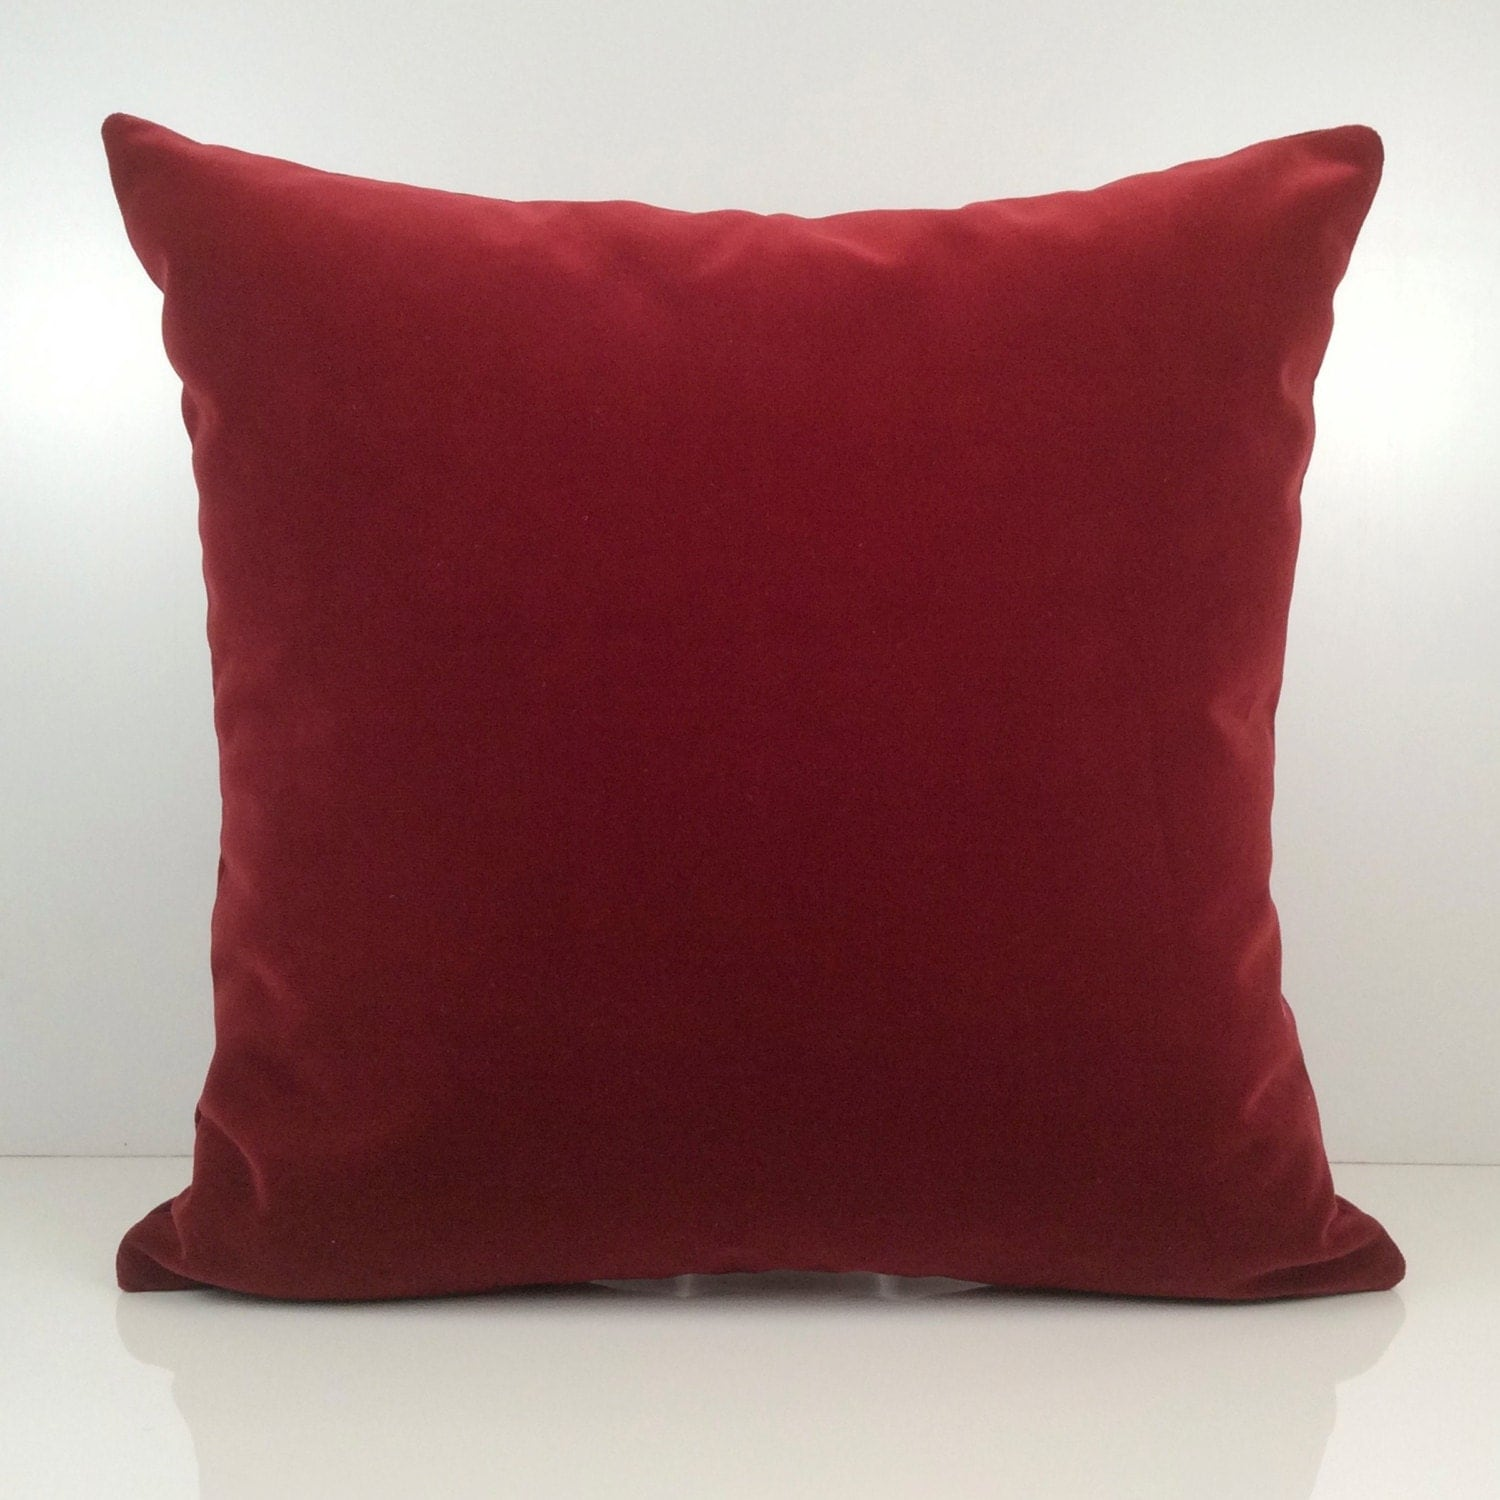 Throw Pillows Maroon : Bright Burgundy Pillow Throw Pillow Cover Decorative Pillow